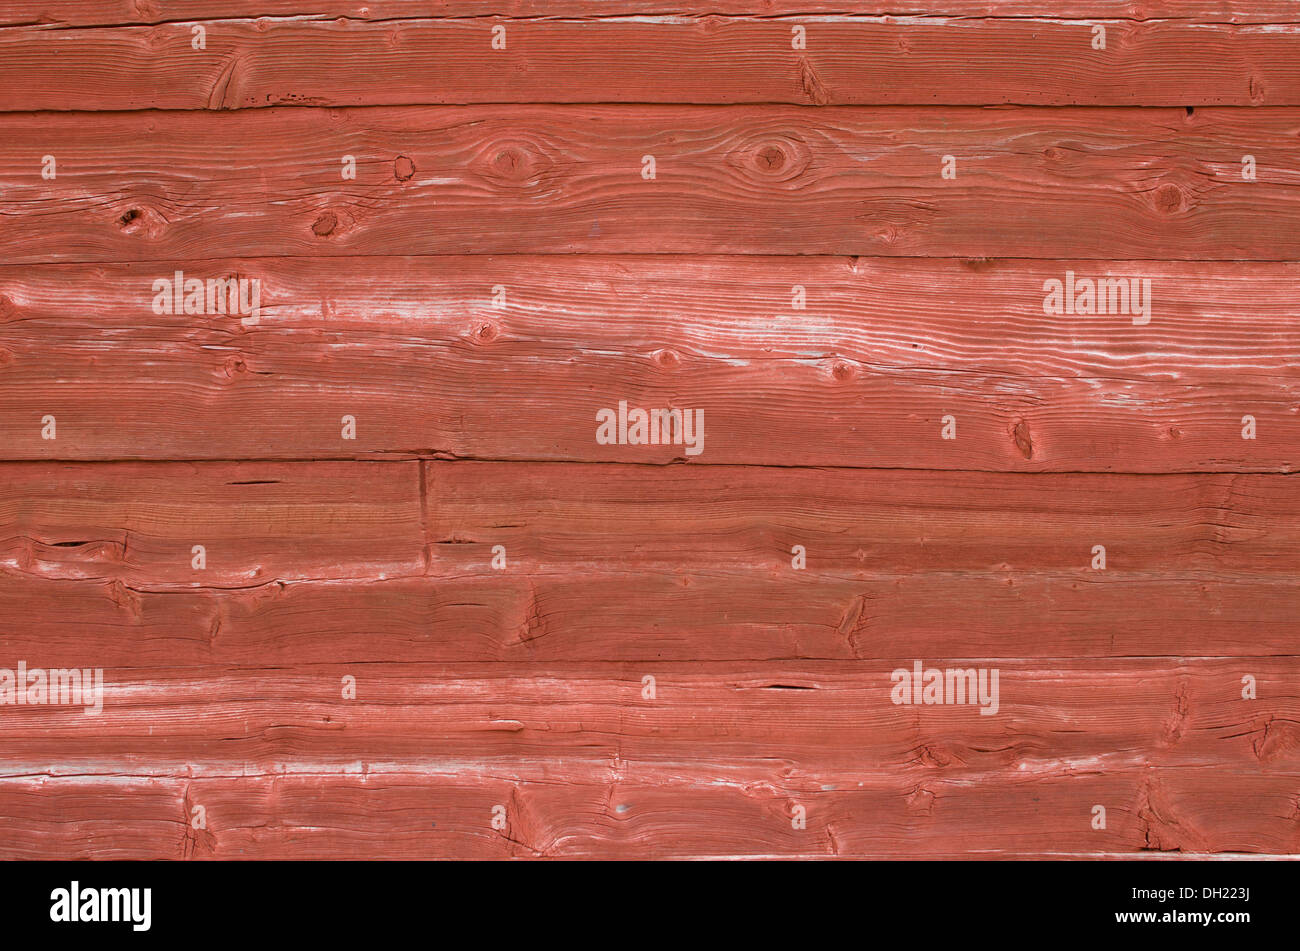 Red patina background - Stock Image